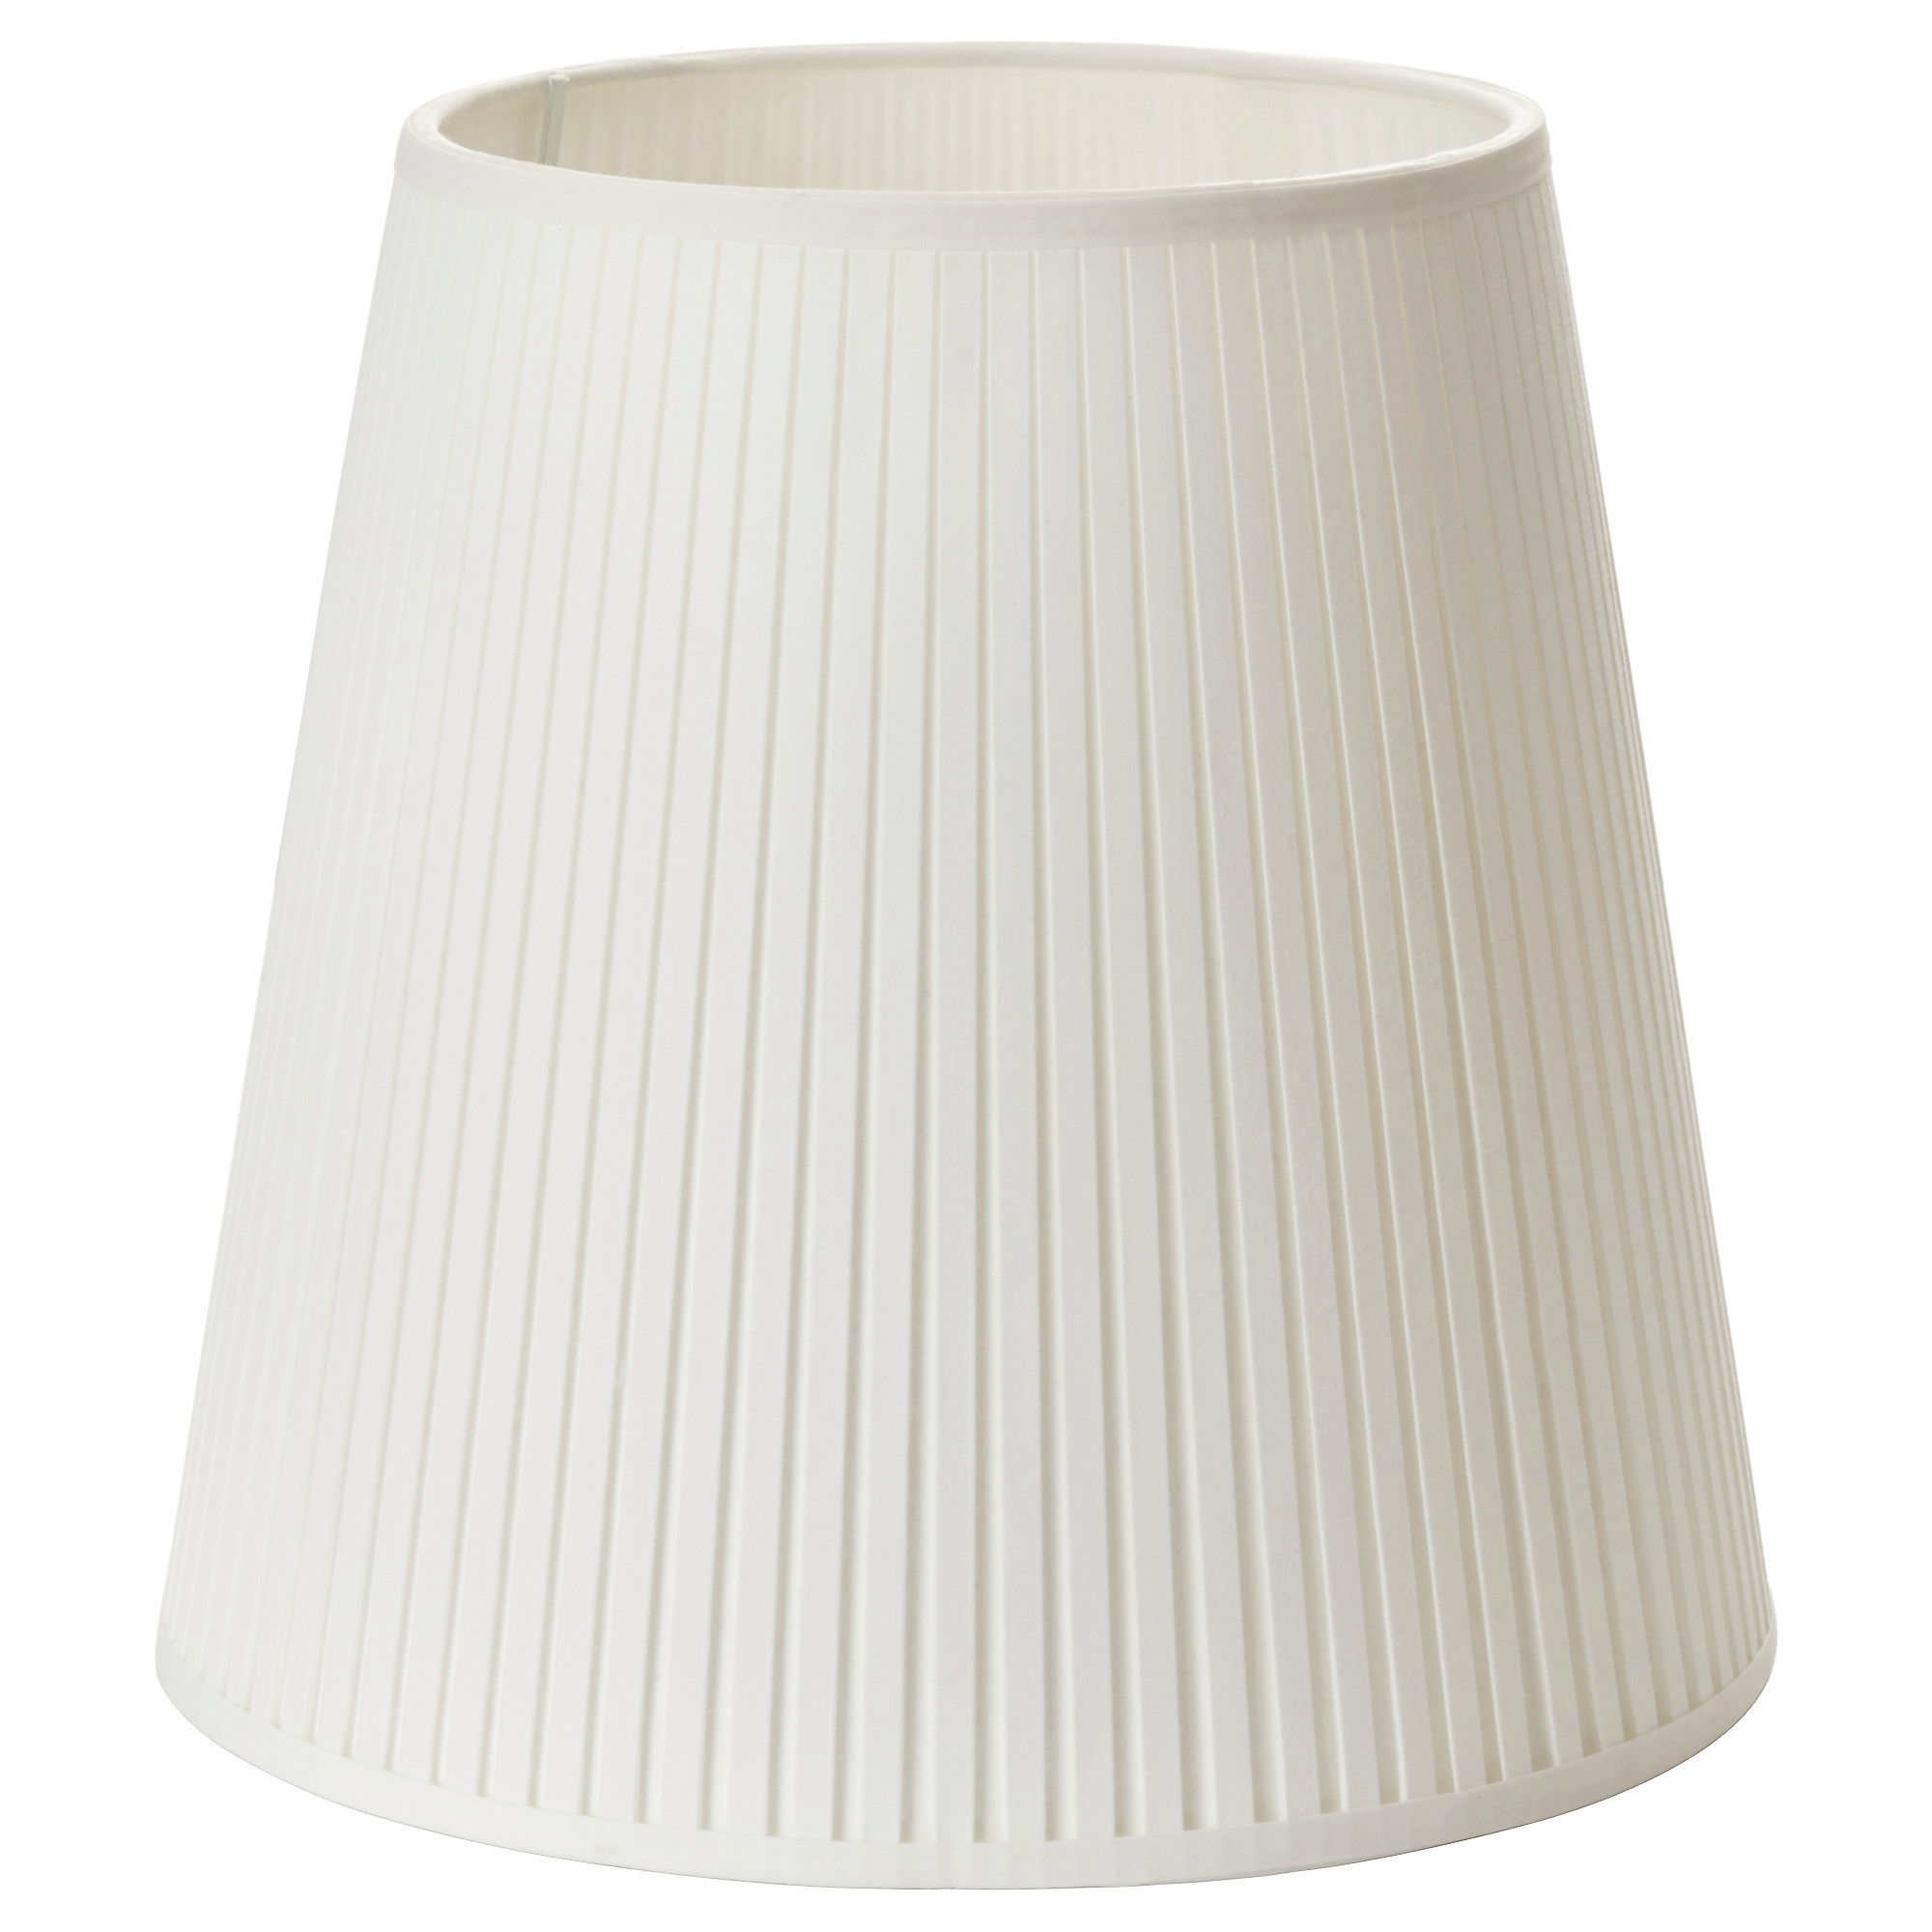 Square bedside lamp shades better lamps square lamp shades - Ek S Lamp Shade Off White Height 13 Diameter 13 Height